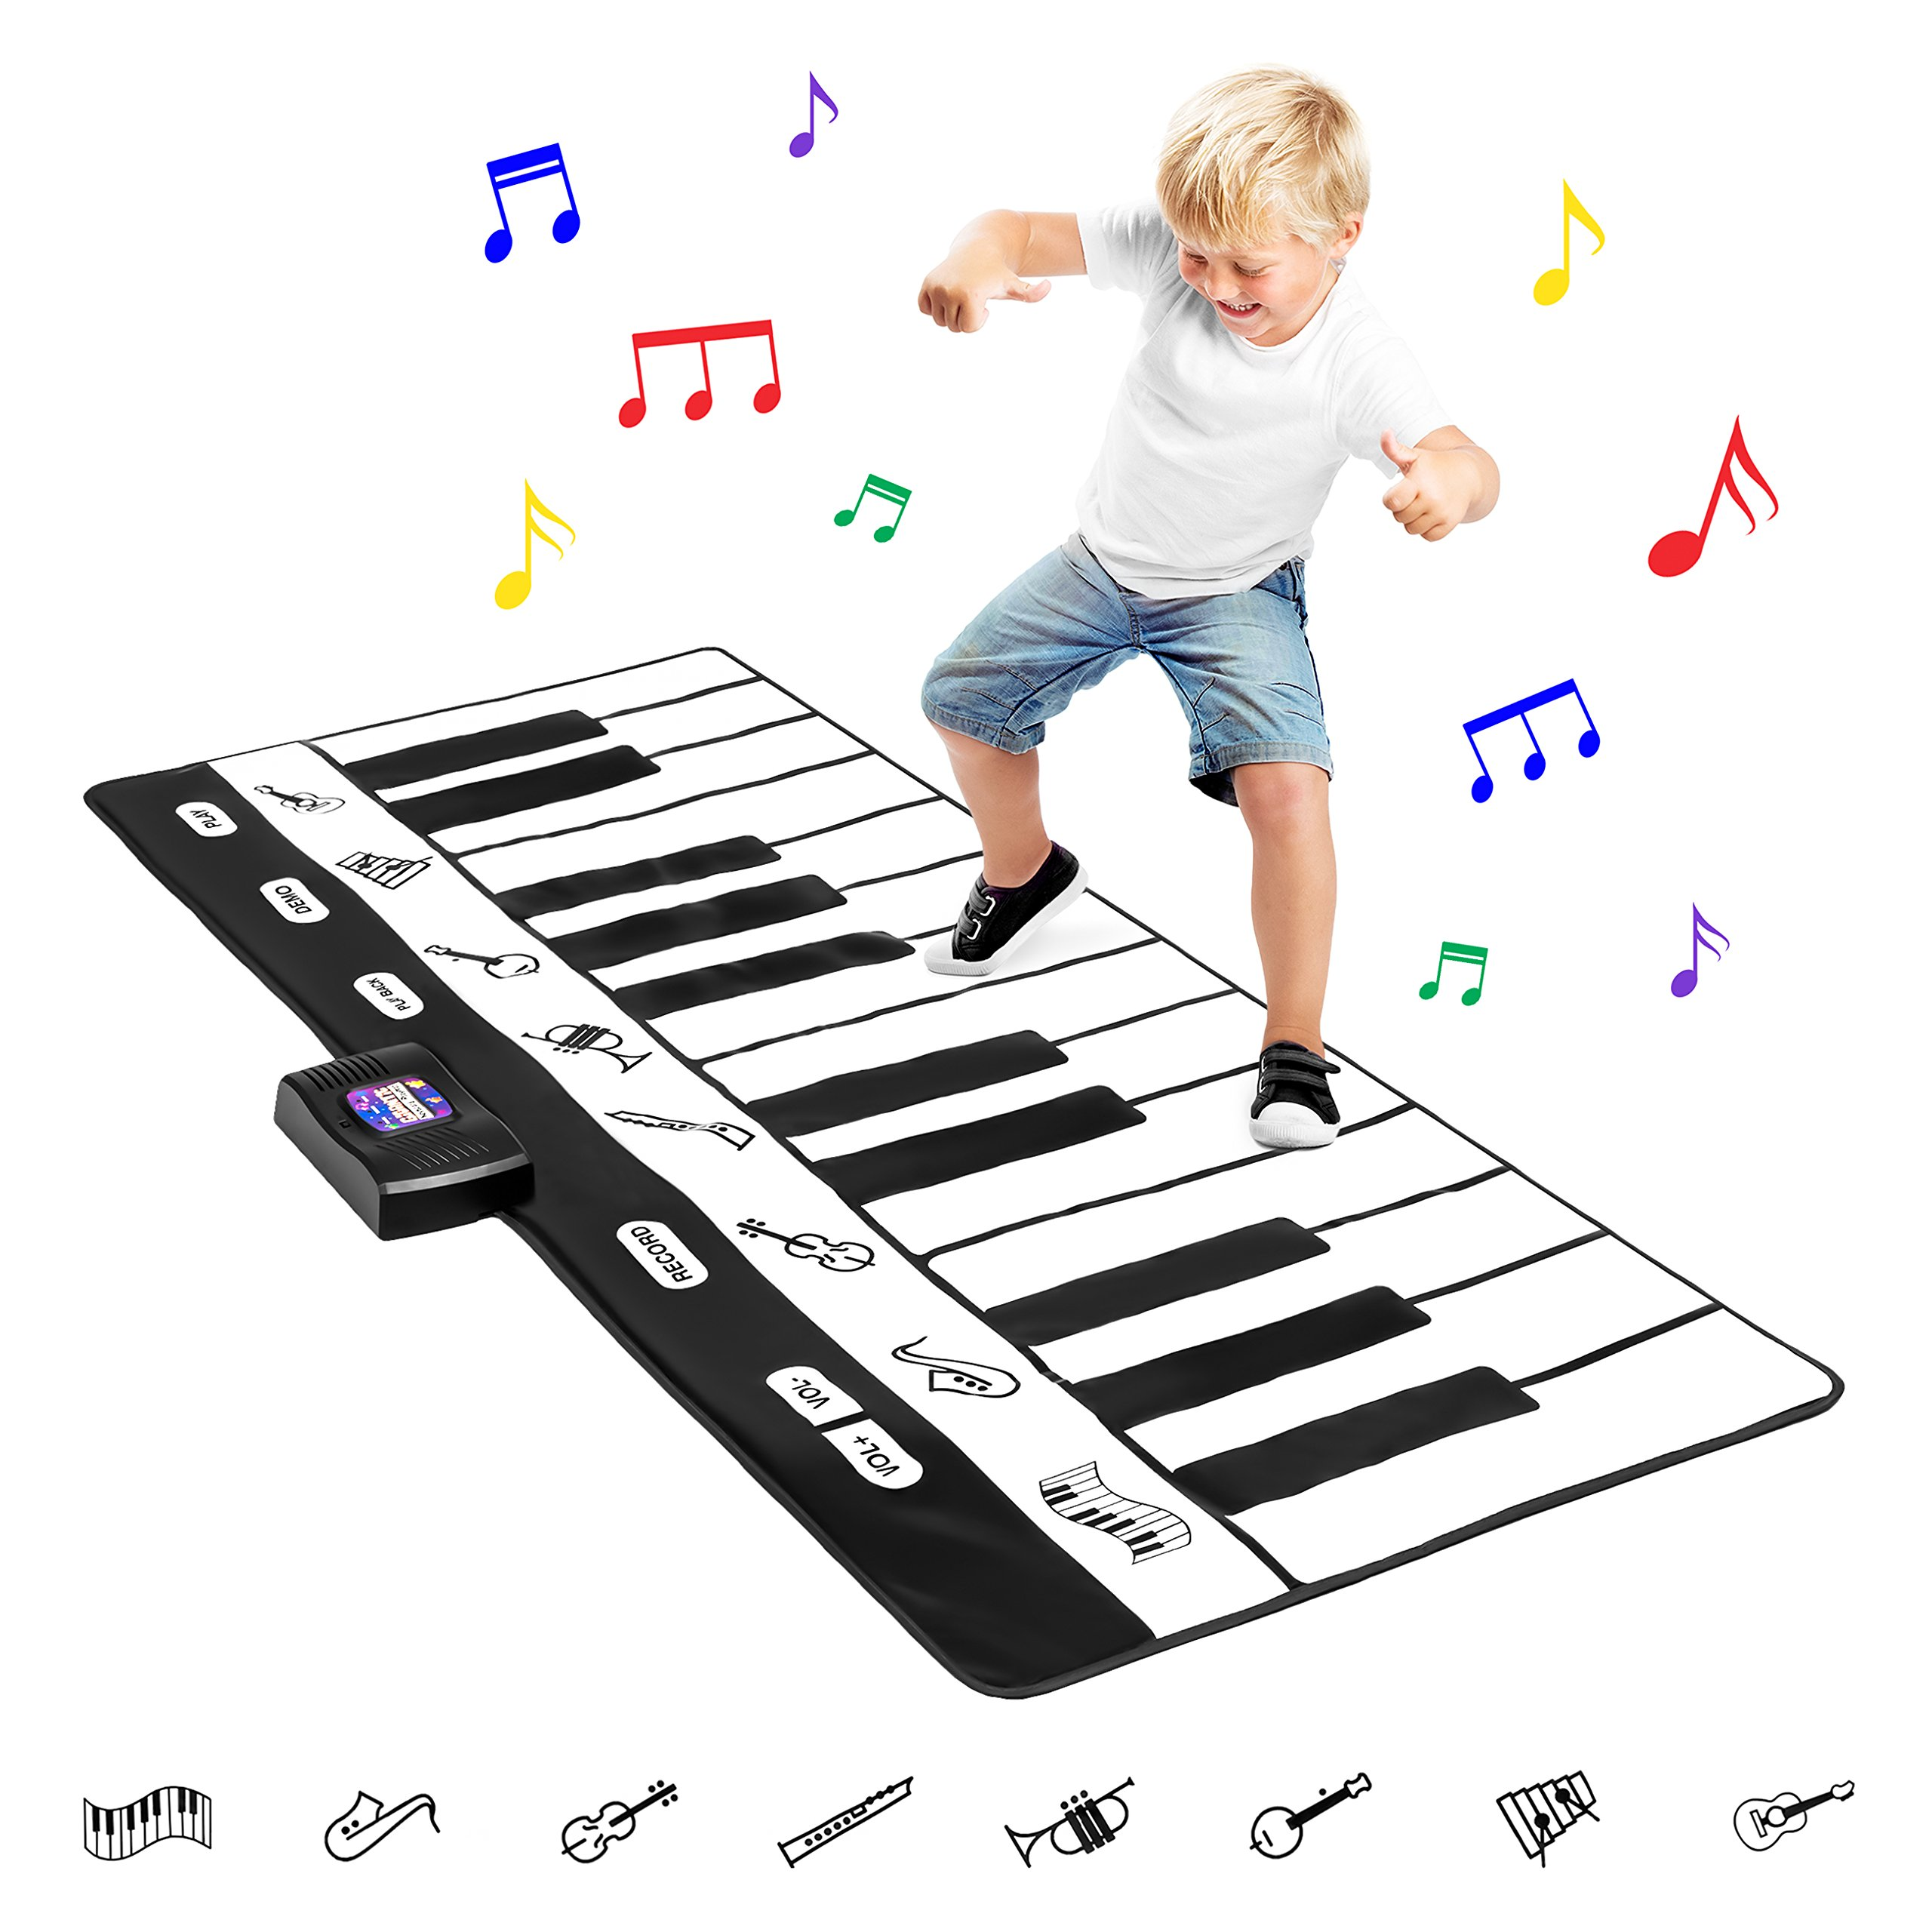 Best Choice Products 71in Giant Heavy-Duty Vinyl 24-Key Piano Keyboard Music Playmat w/ 8 Instrument Settings, Easy Touch Buttons, Record, Playback - Black/White